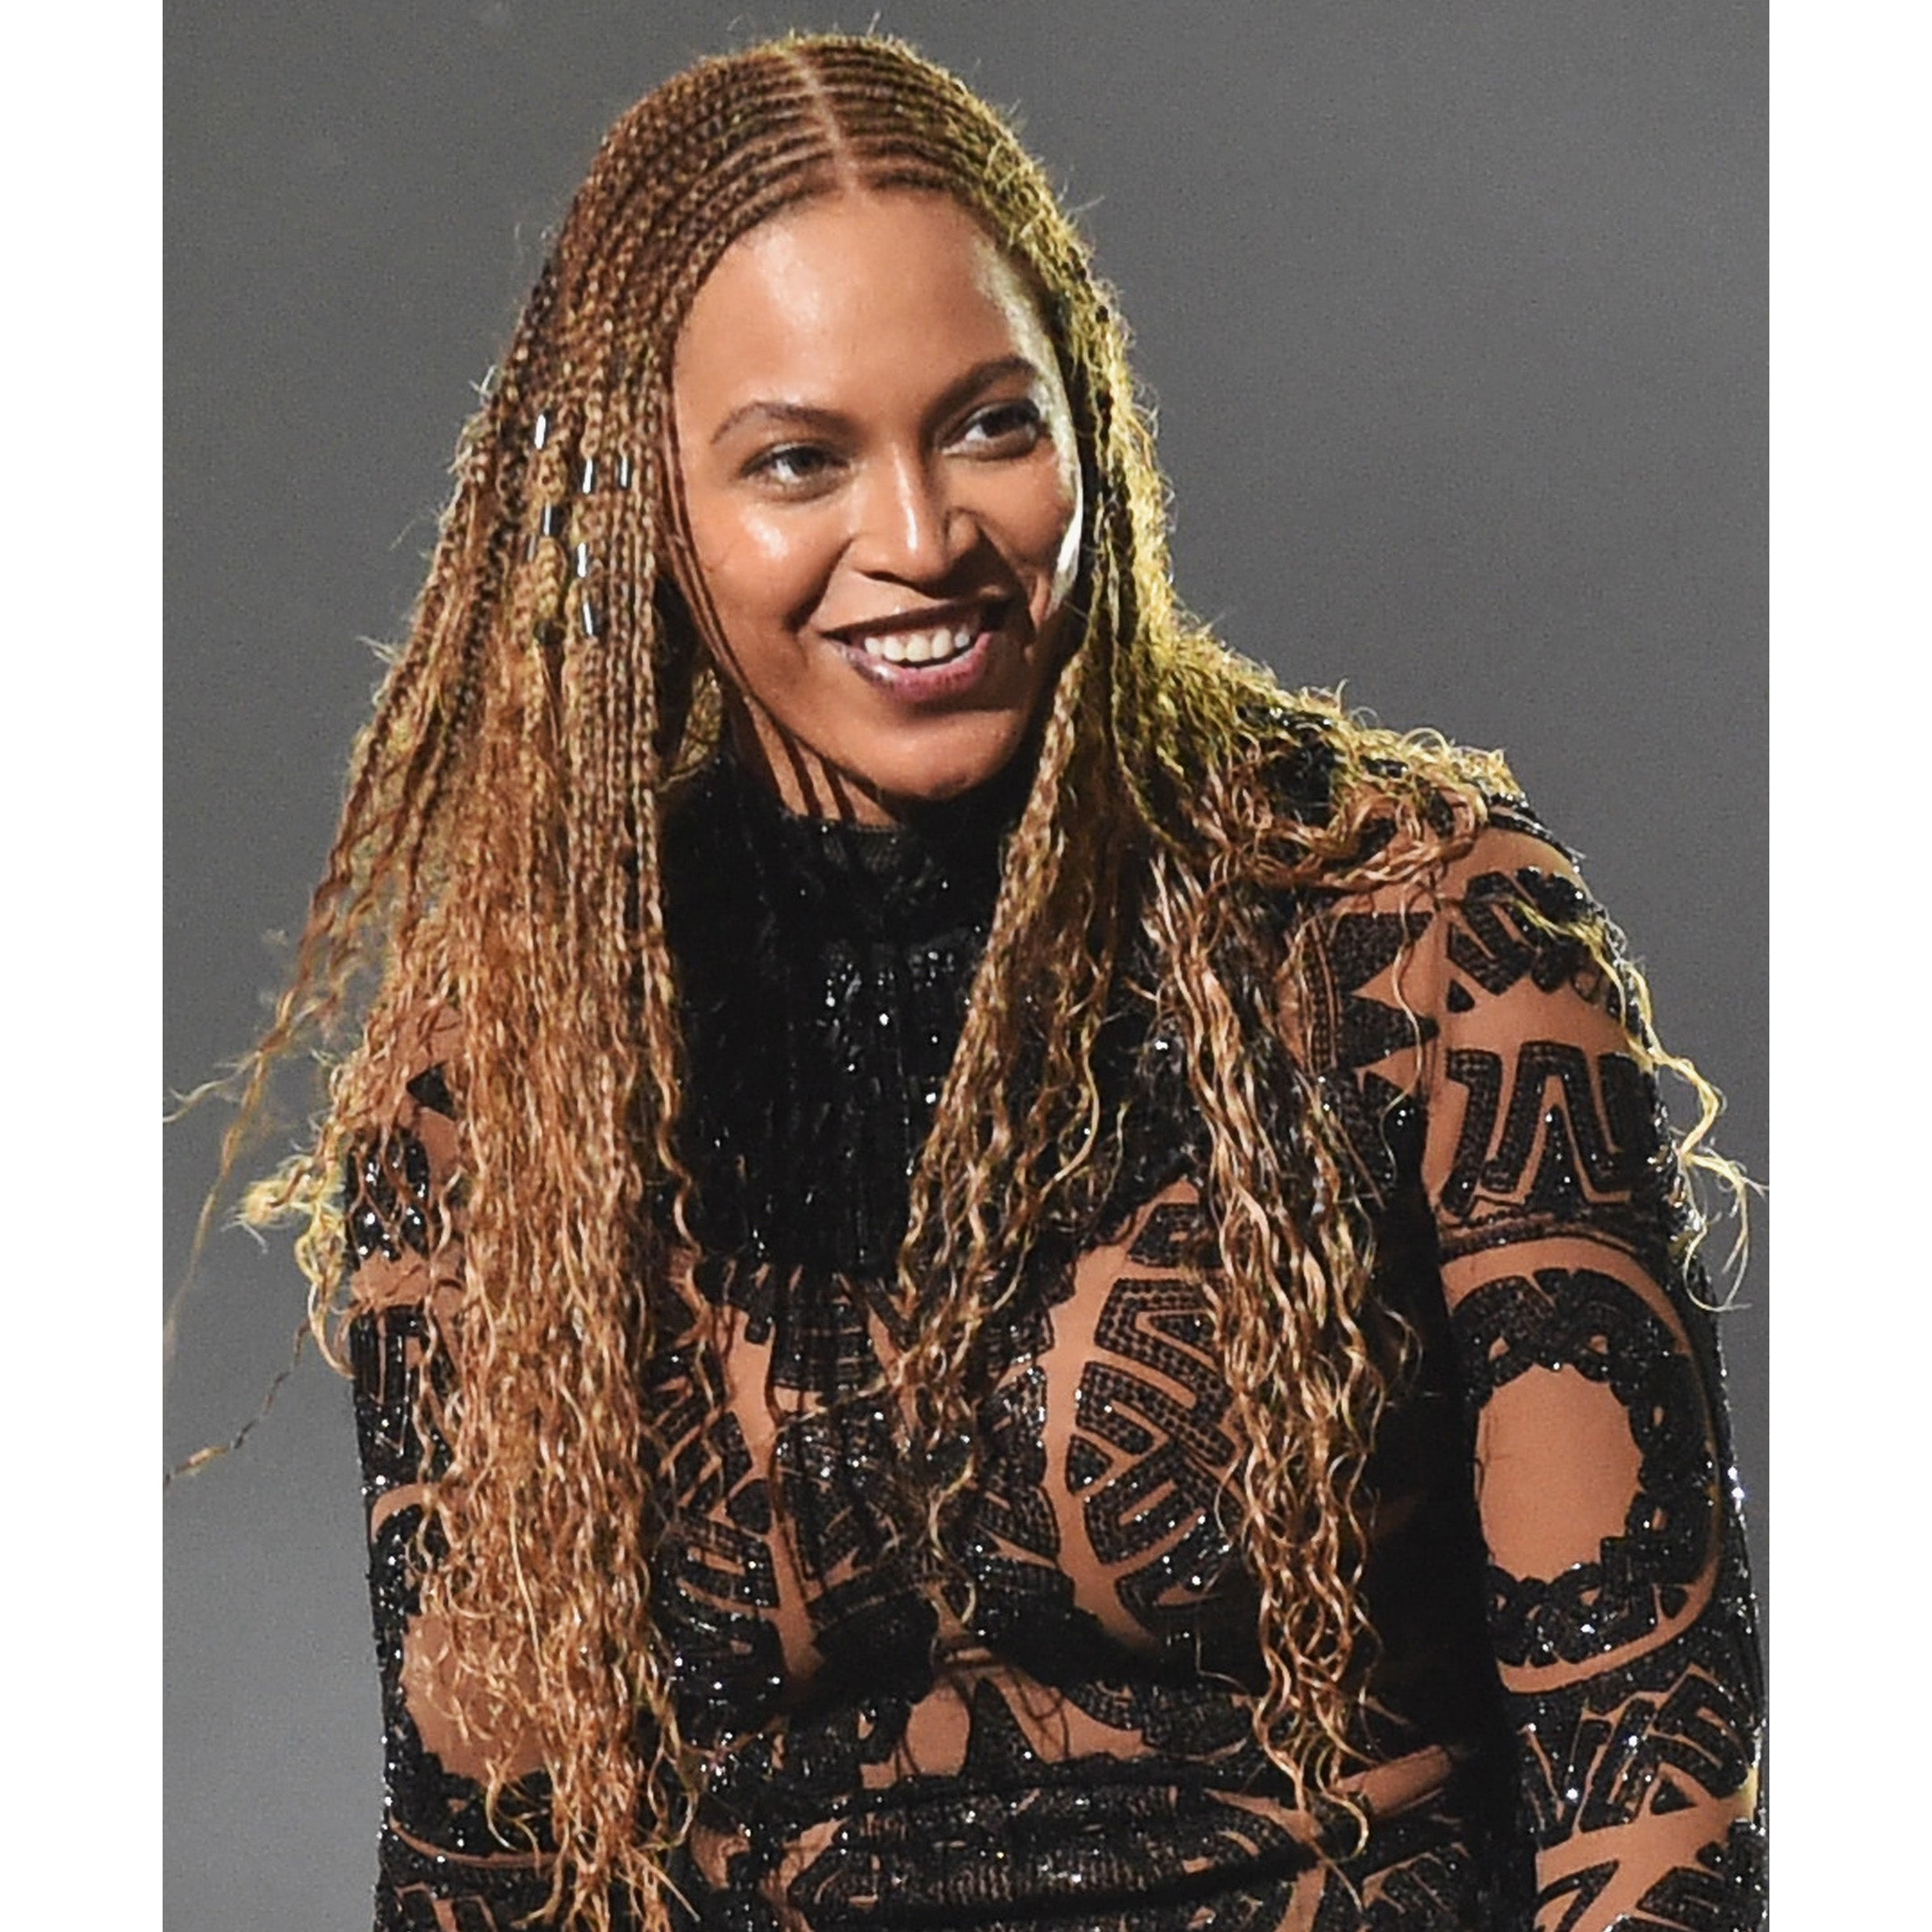 Beyoncé Is One Step Closer to the Elusive EGOT